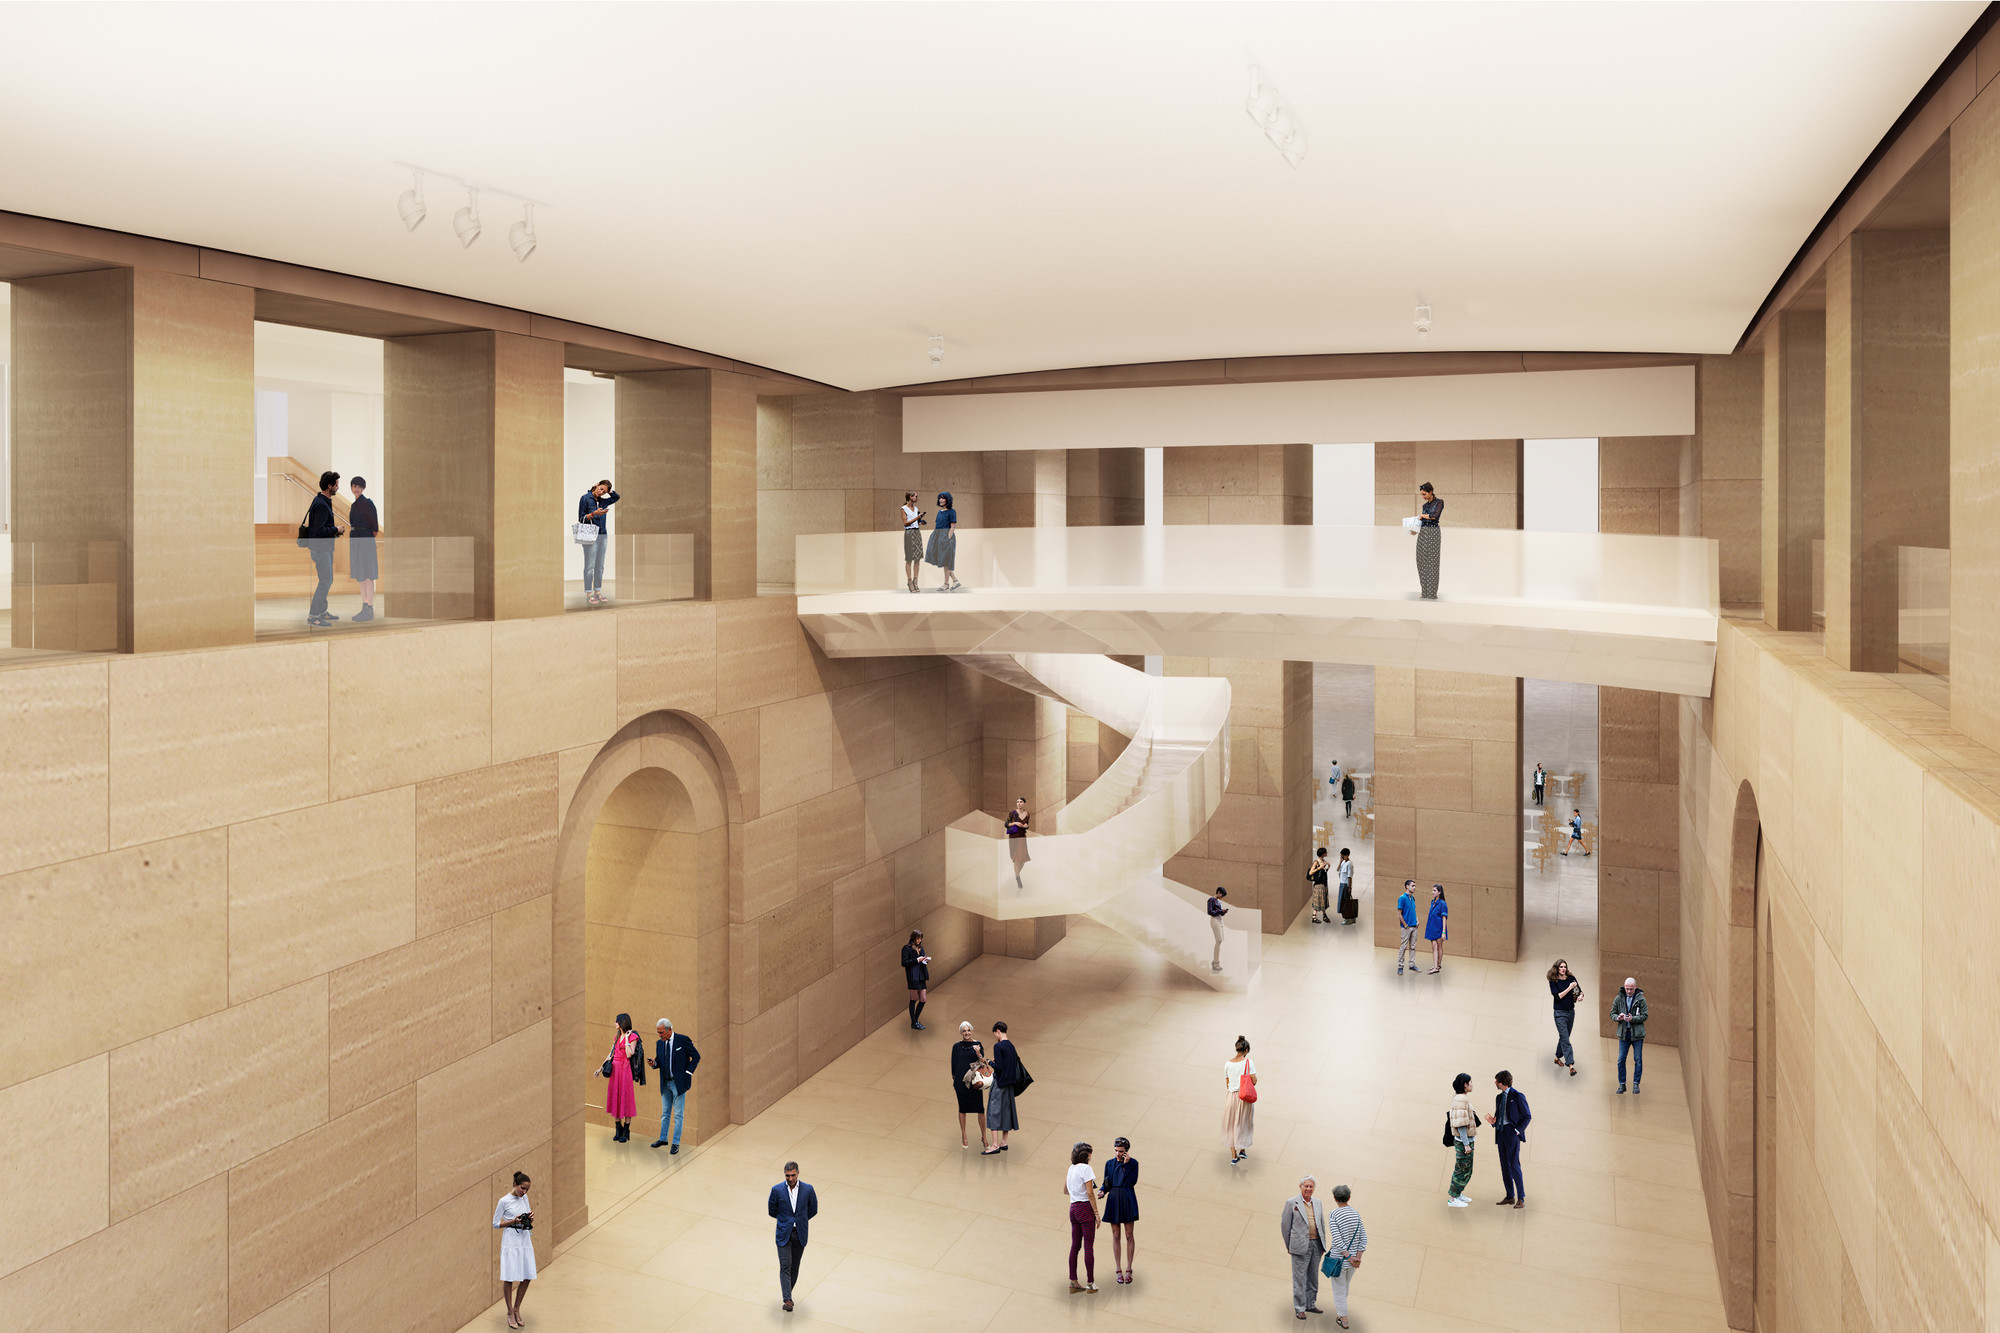 Gehry Unveils Designs to Extend the Philadelphia Art Museum Downwards, The heart of the Museum will be opened up, creating a clear sight line through the ground-floor and first-floor galleries that will greatly simplify wayfinding. Image © Gehry Partners, LLP